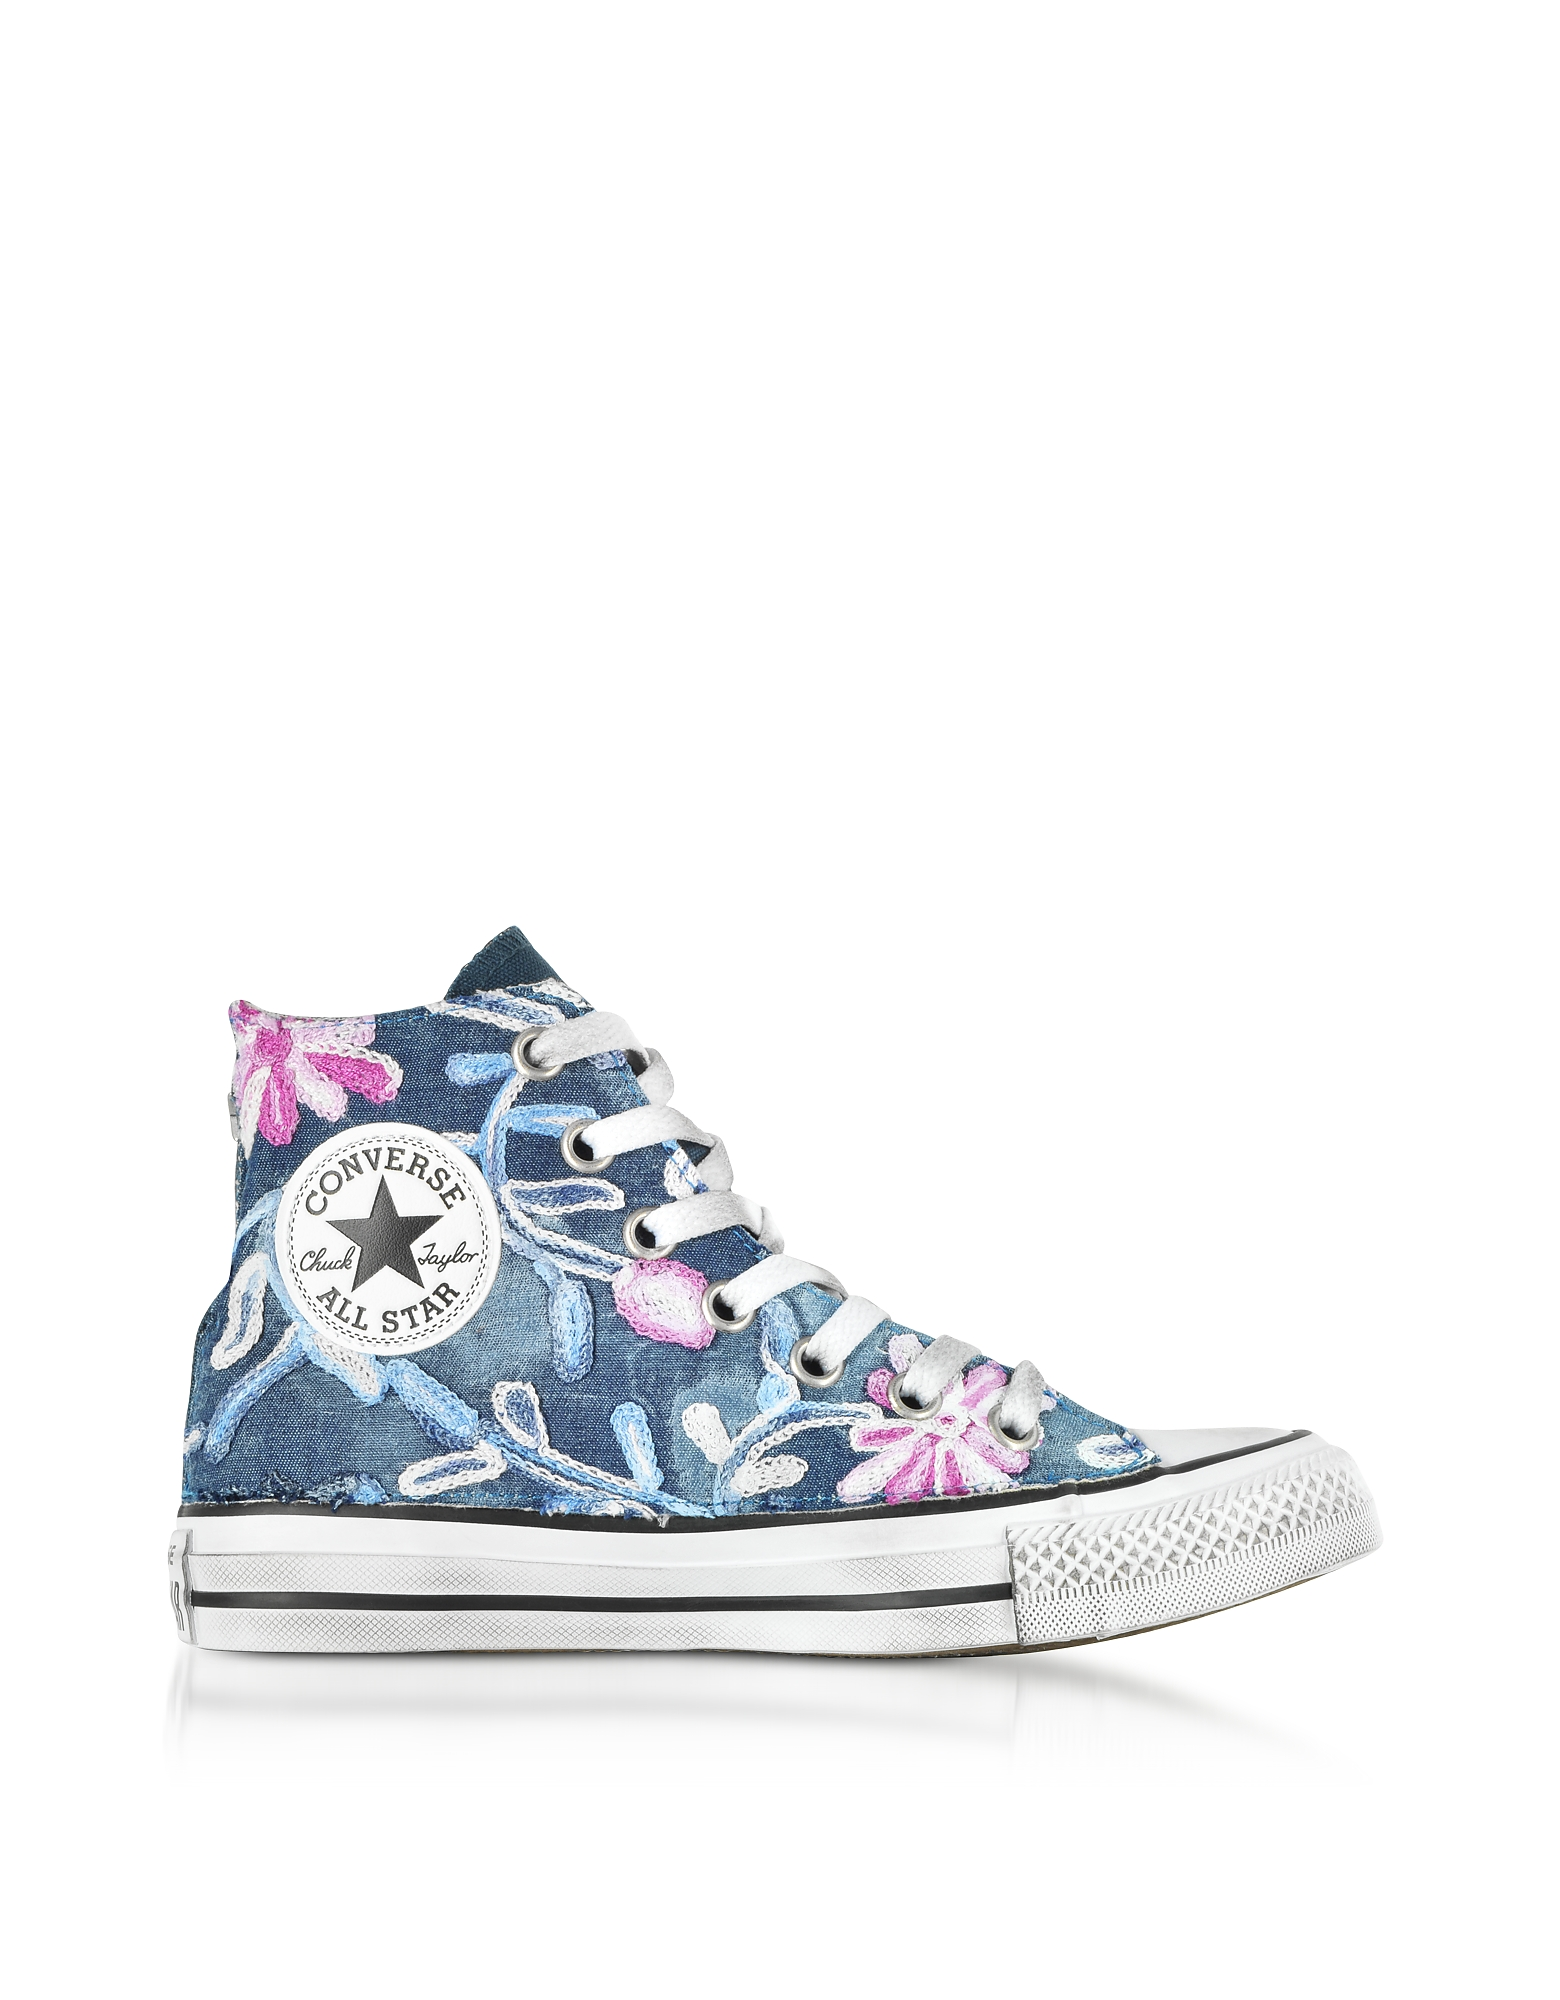 Converse Limited Edition Shoes, Chuck Taylor All Star High Vintage Denim Flowers Sneakers